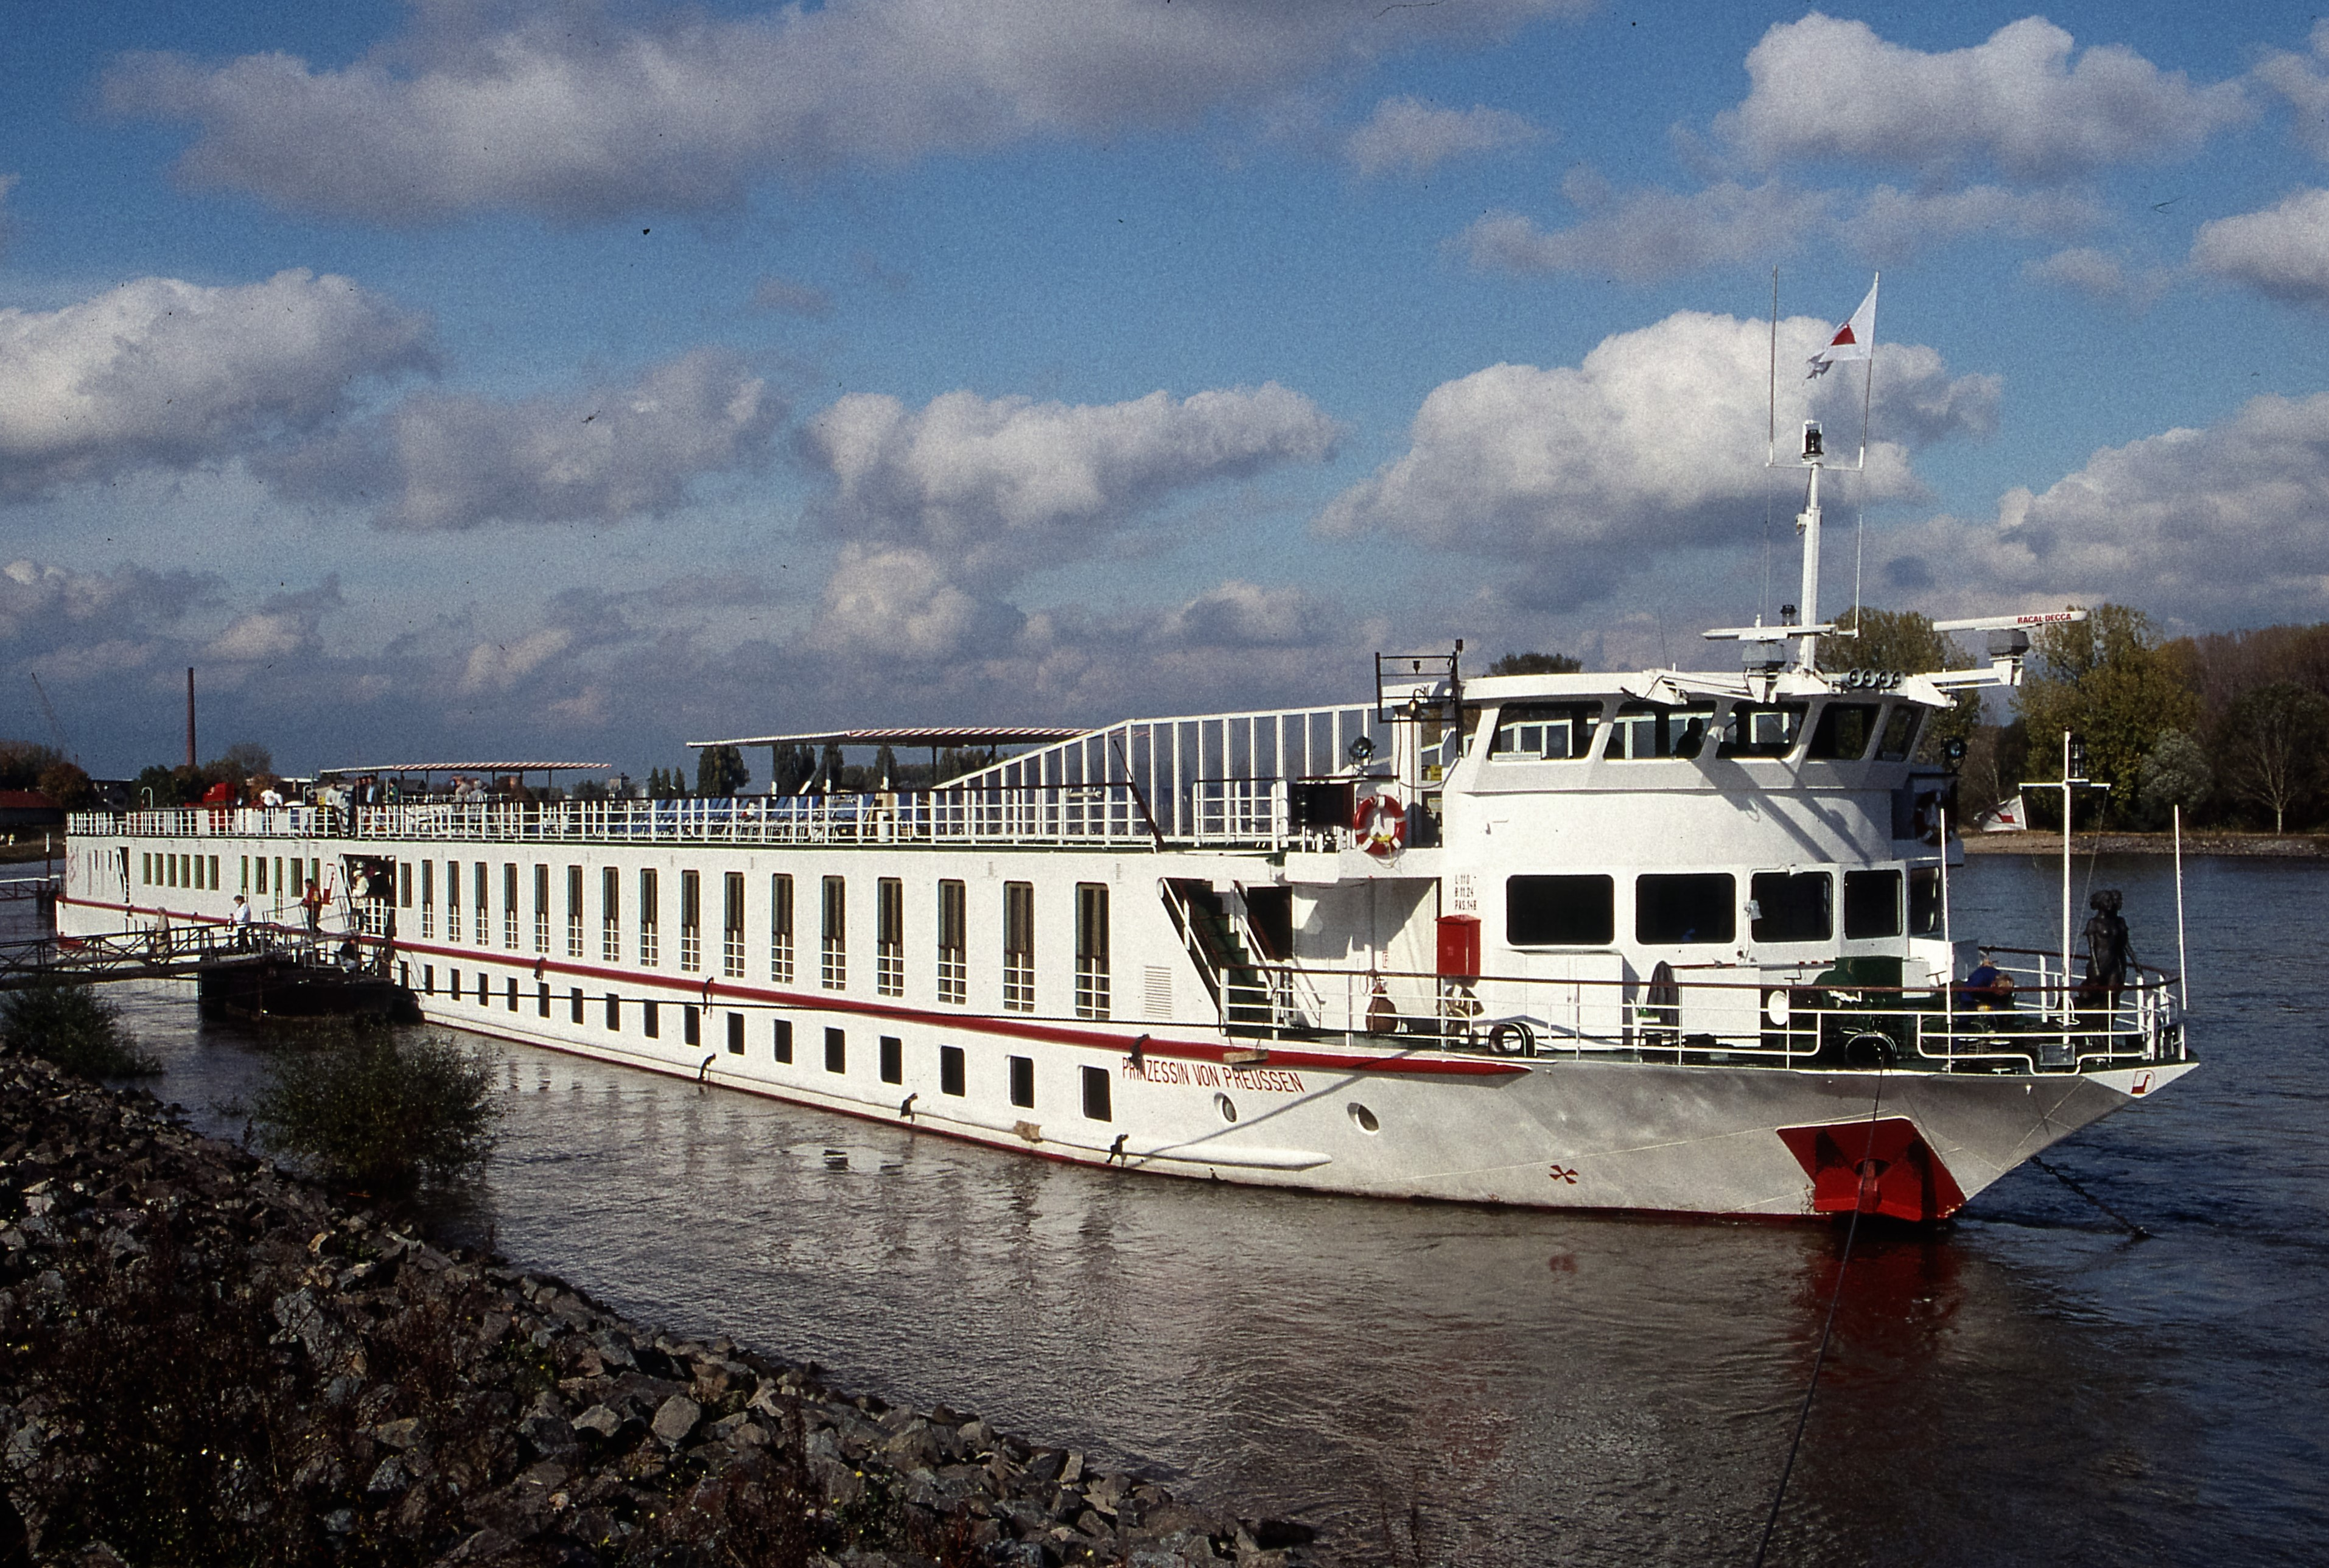 The two-deck riverboat of the past often had lower deck cabins at the waterline and French balcony units above. Photo: Ted Scull